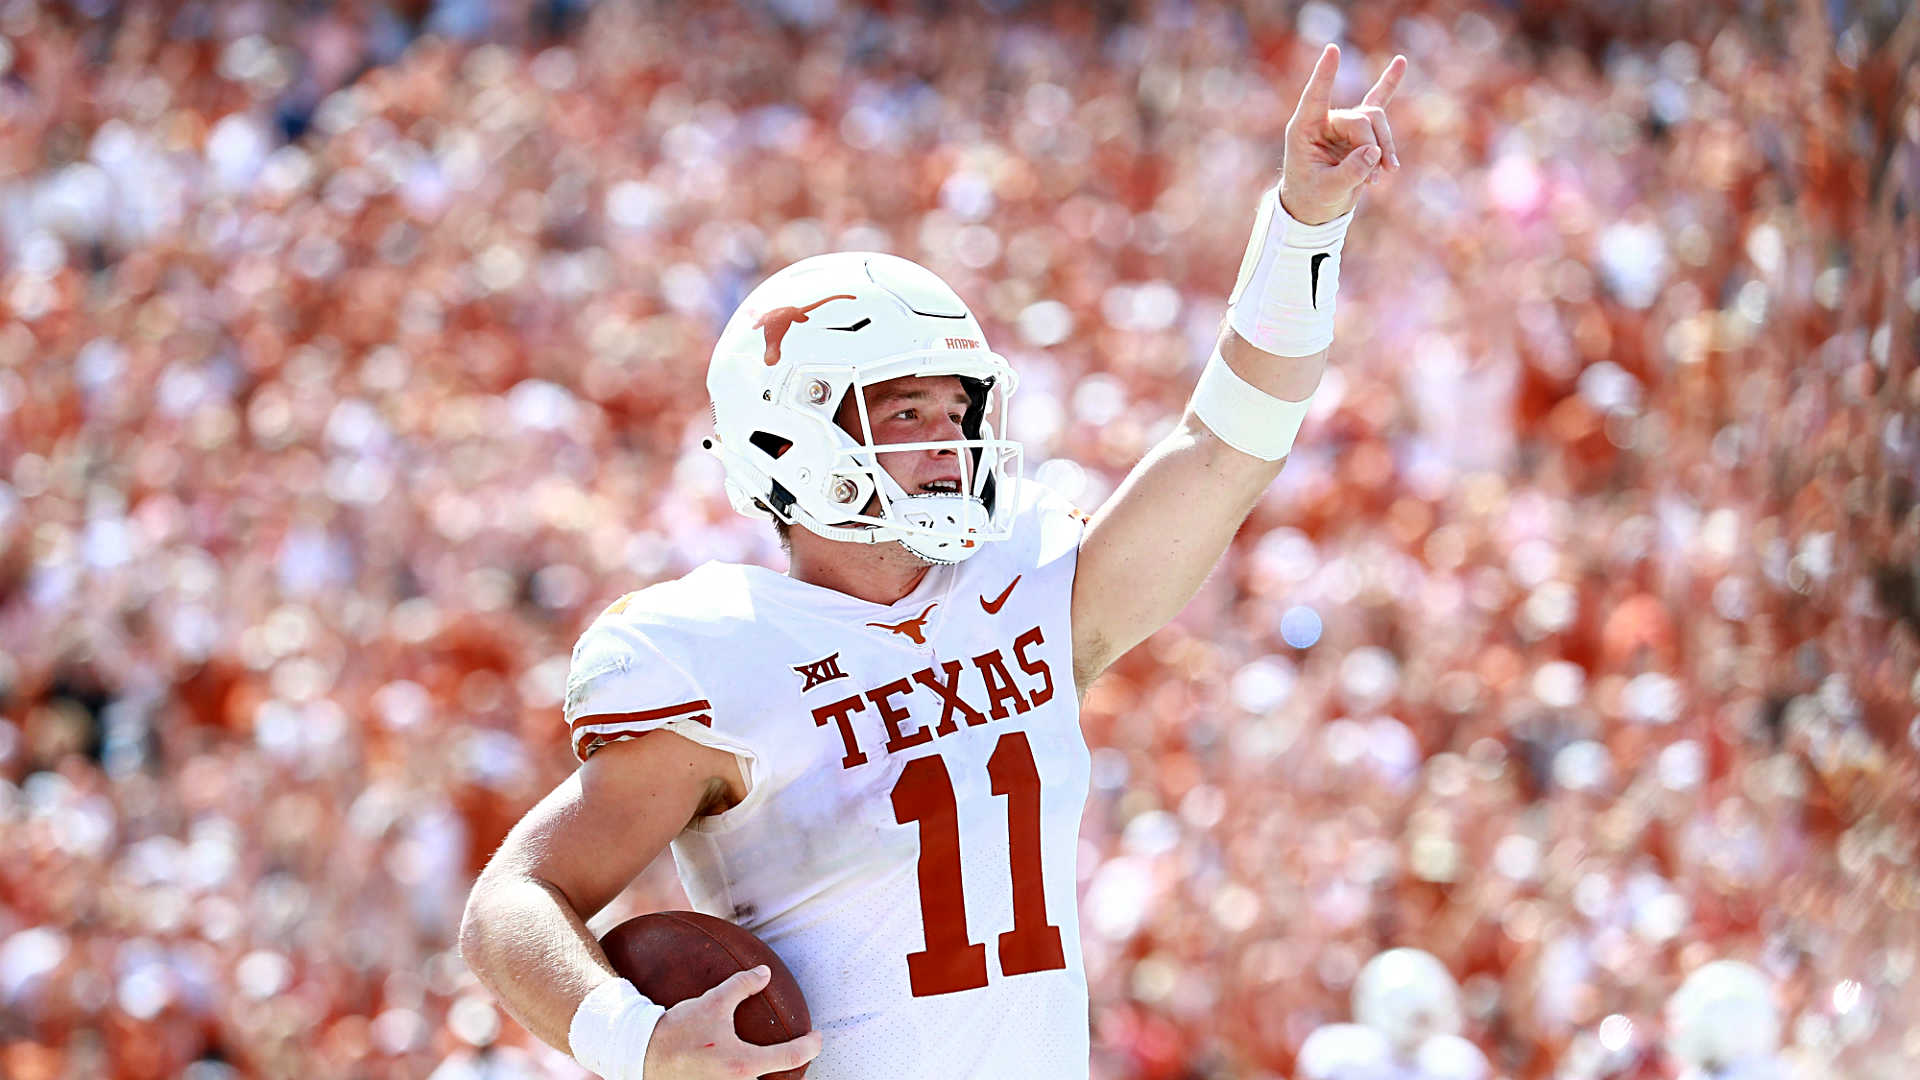 Is Texas back? For Tom Herman, only Longhorns can decide that after Oklahoma win